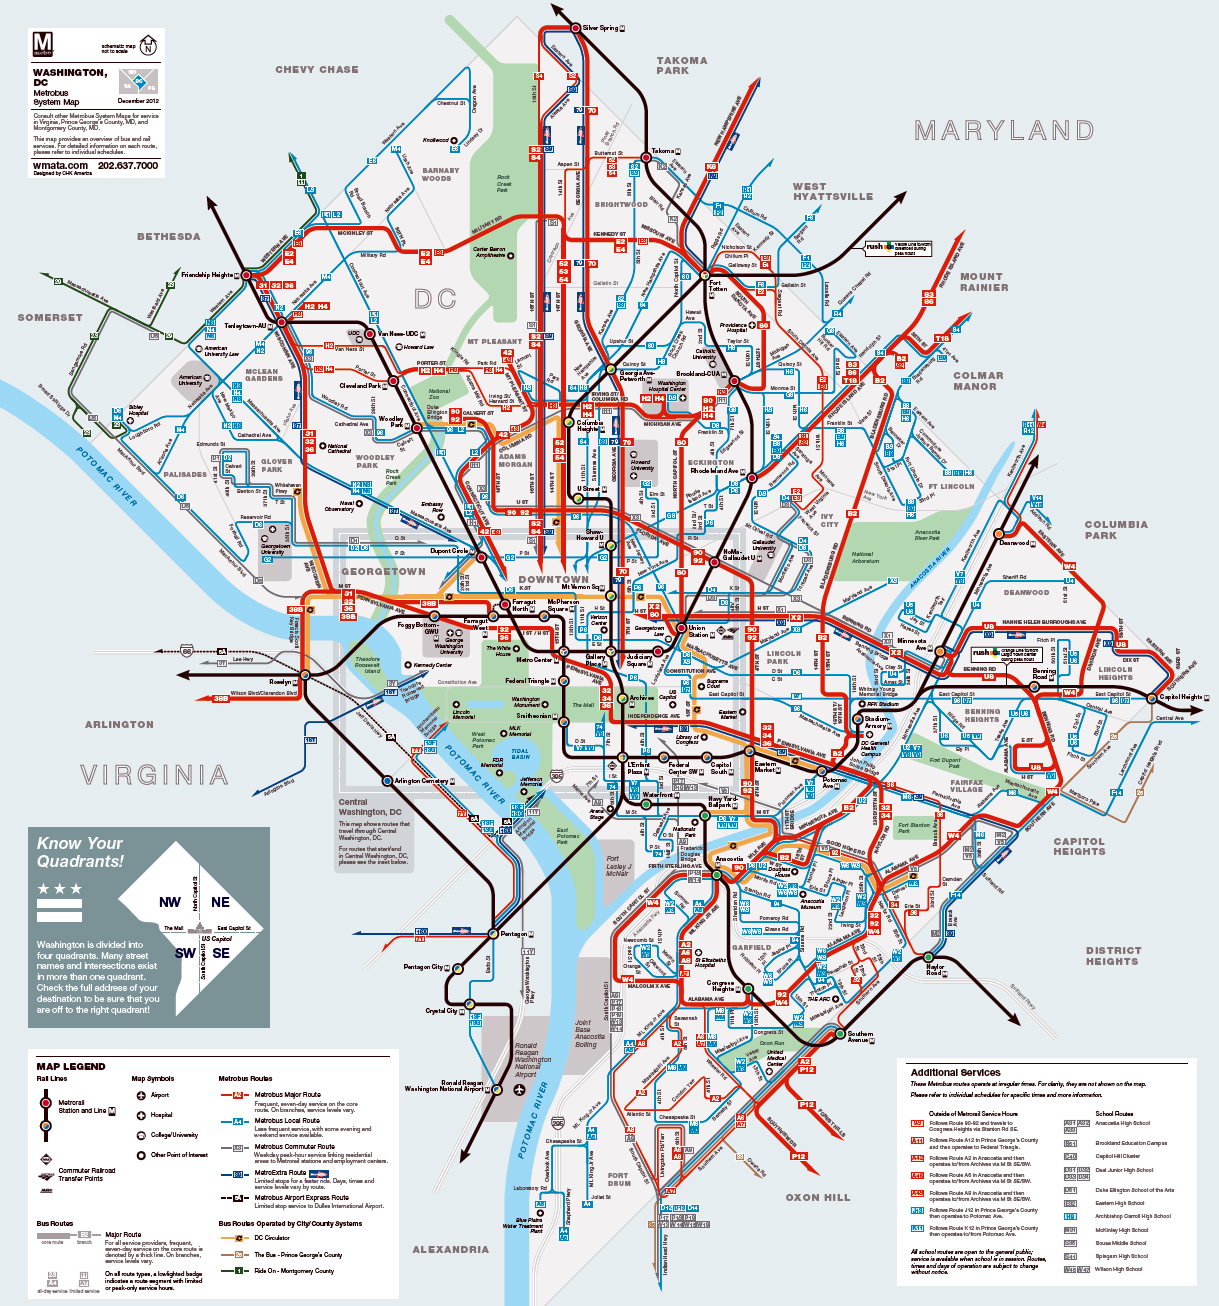 Detailed metrobus route map of Washington D.C. | Washington D.C.